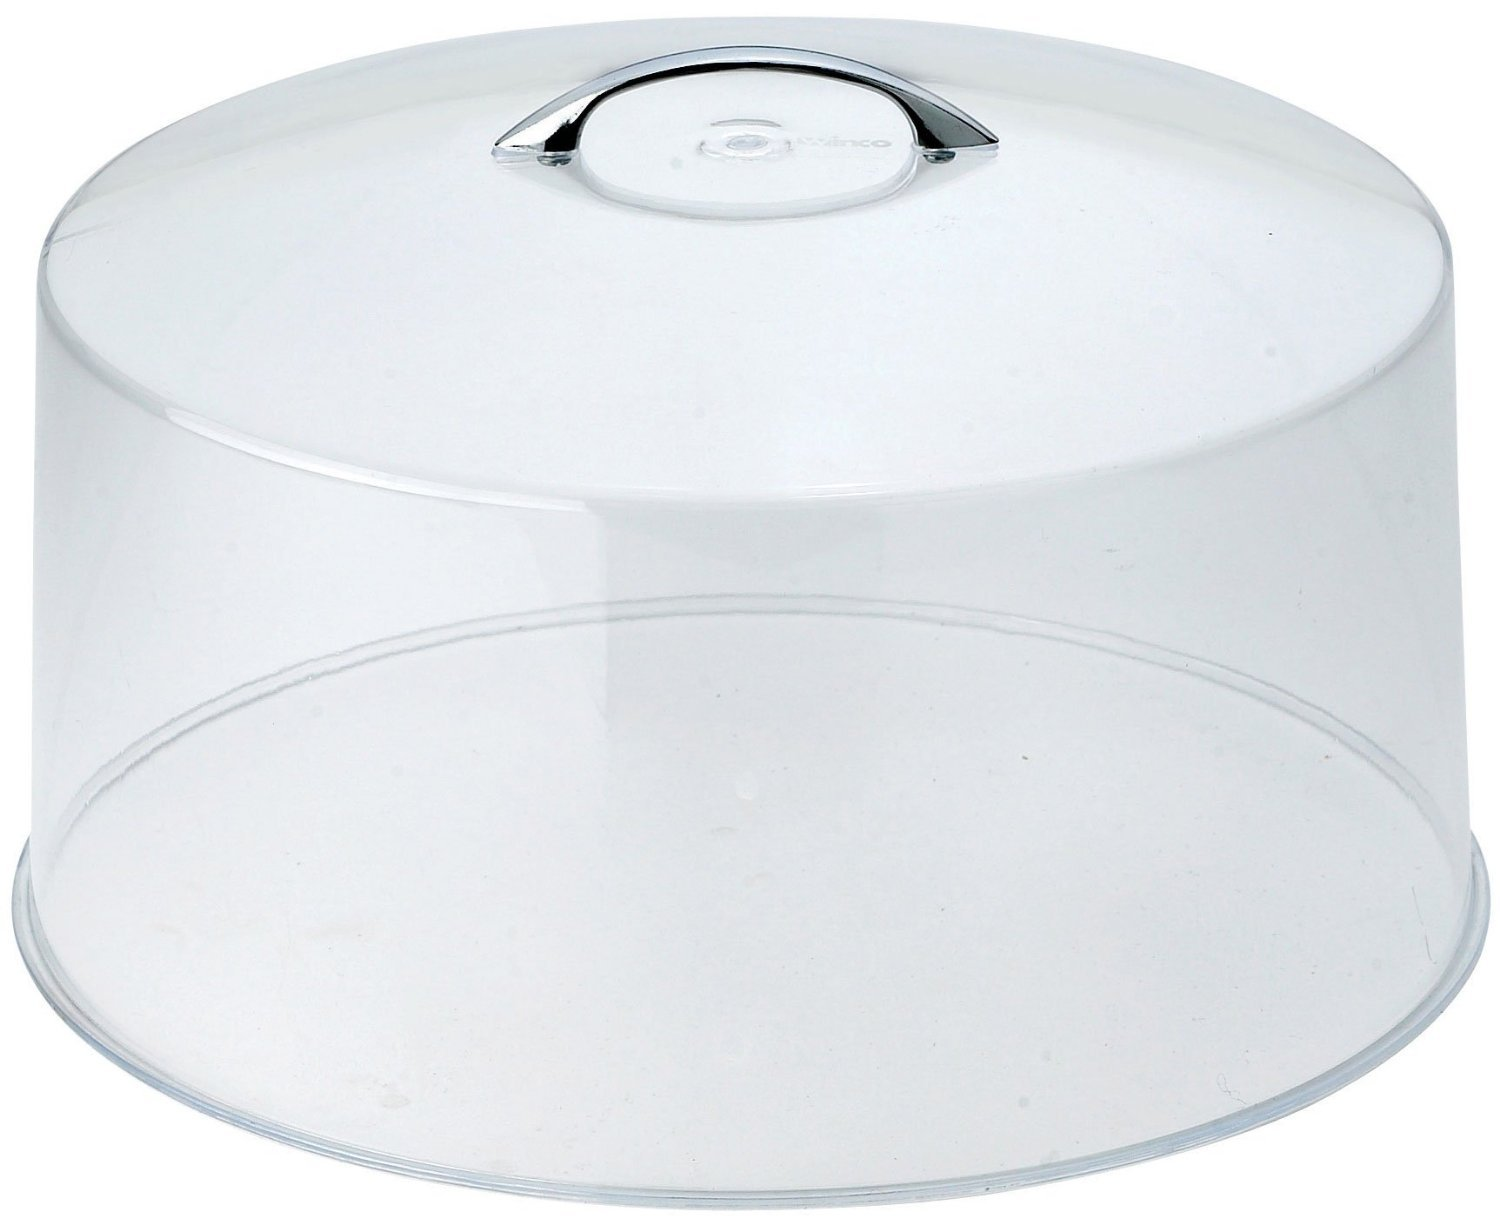 12'', Clear Acrylic, Gloss Handle, Cake Stand Cover